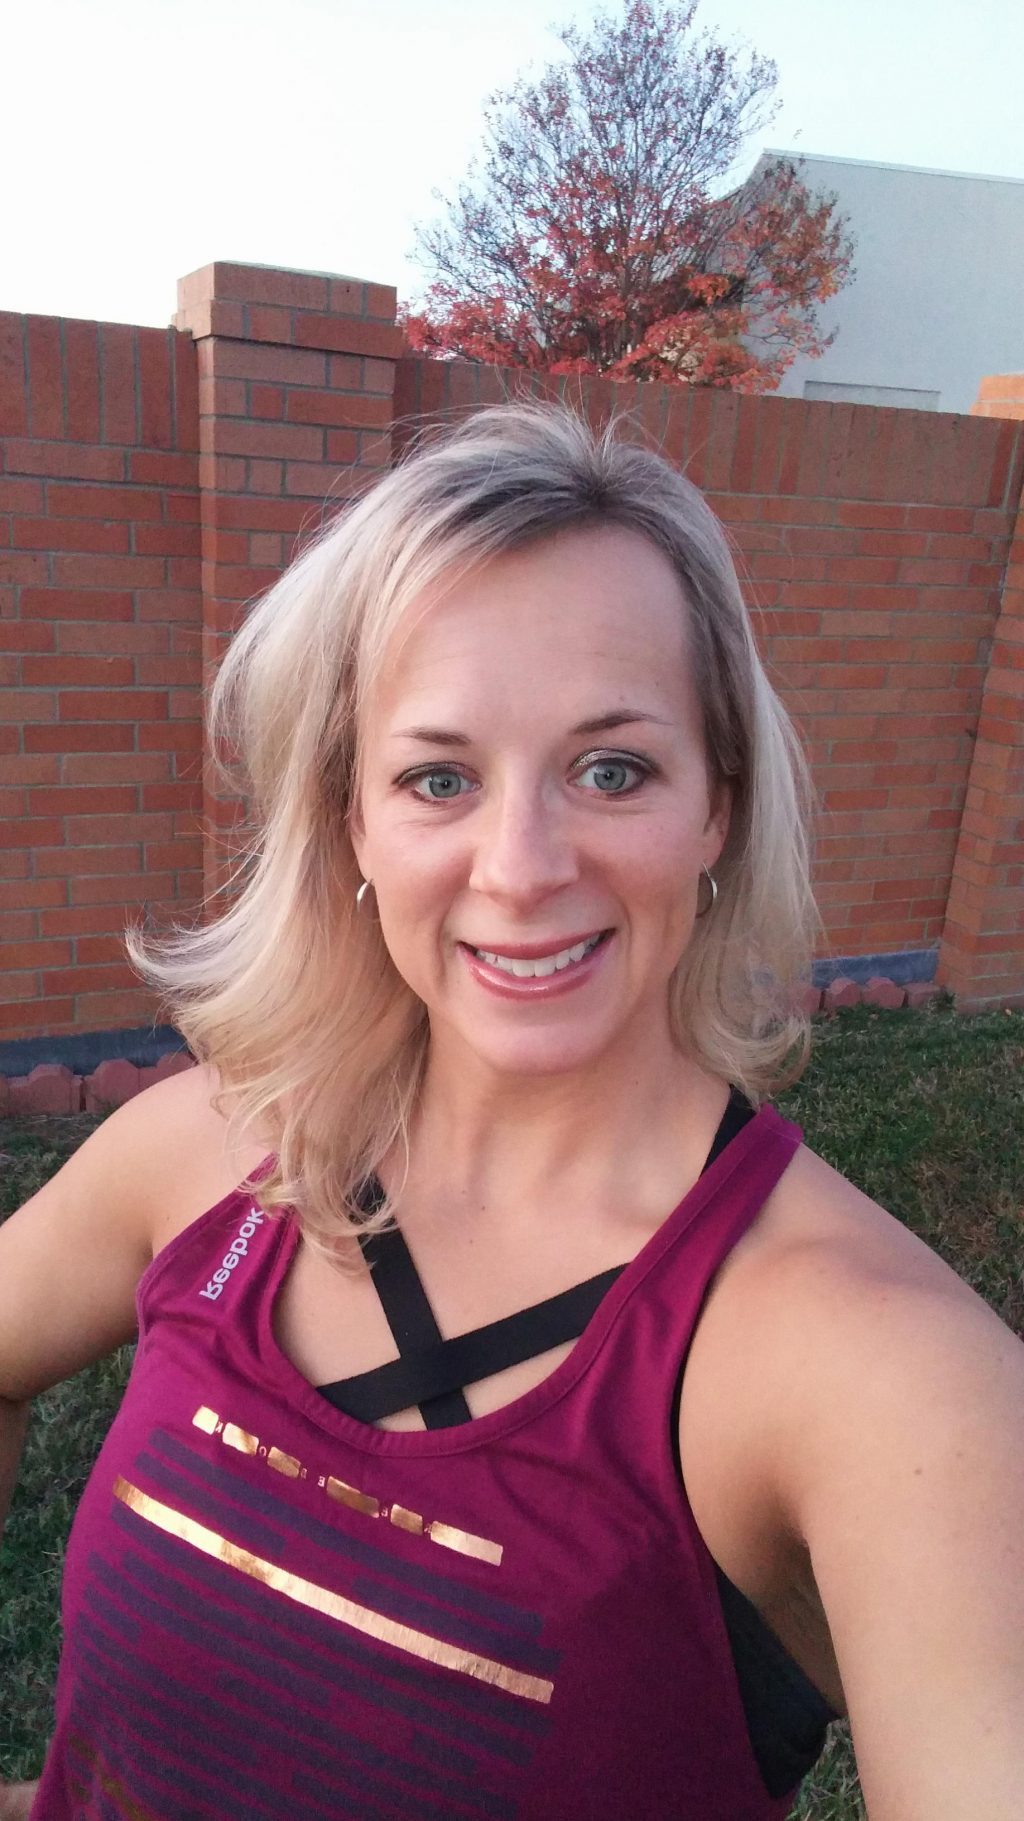 Personal Trainer Hurst, Texas - Heather Bittinger